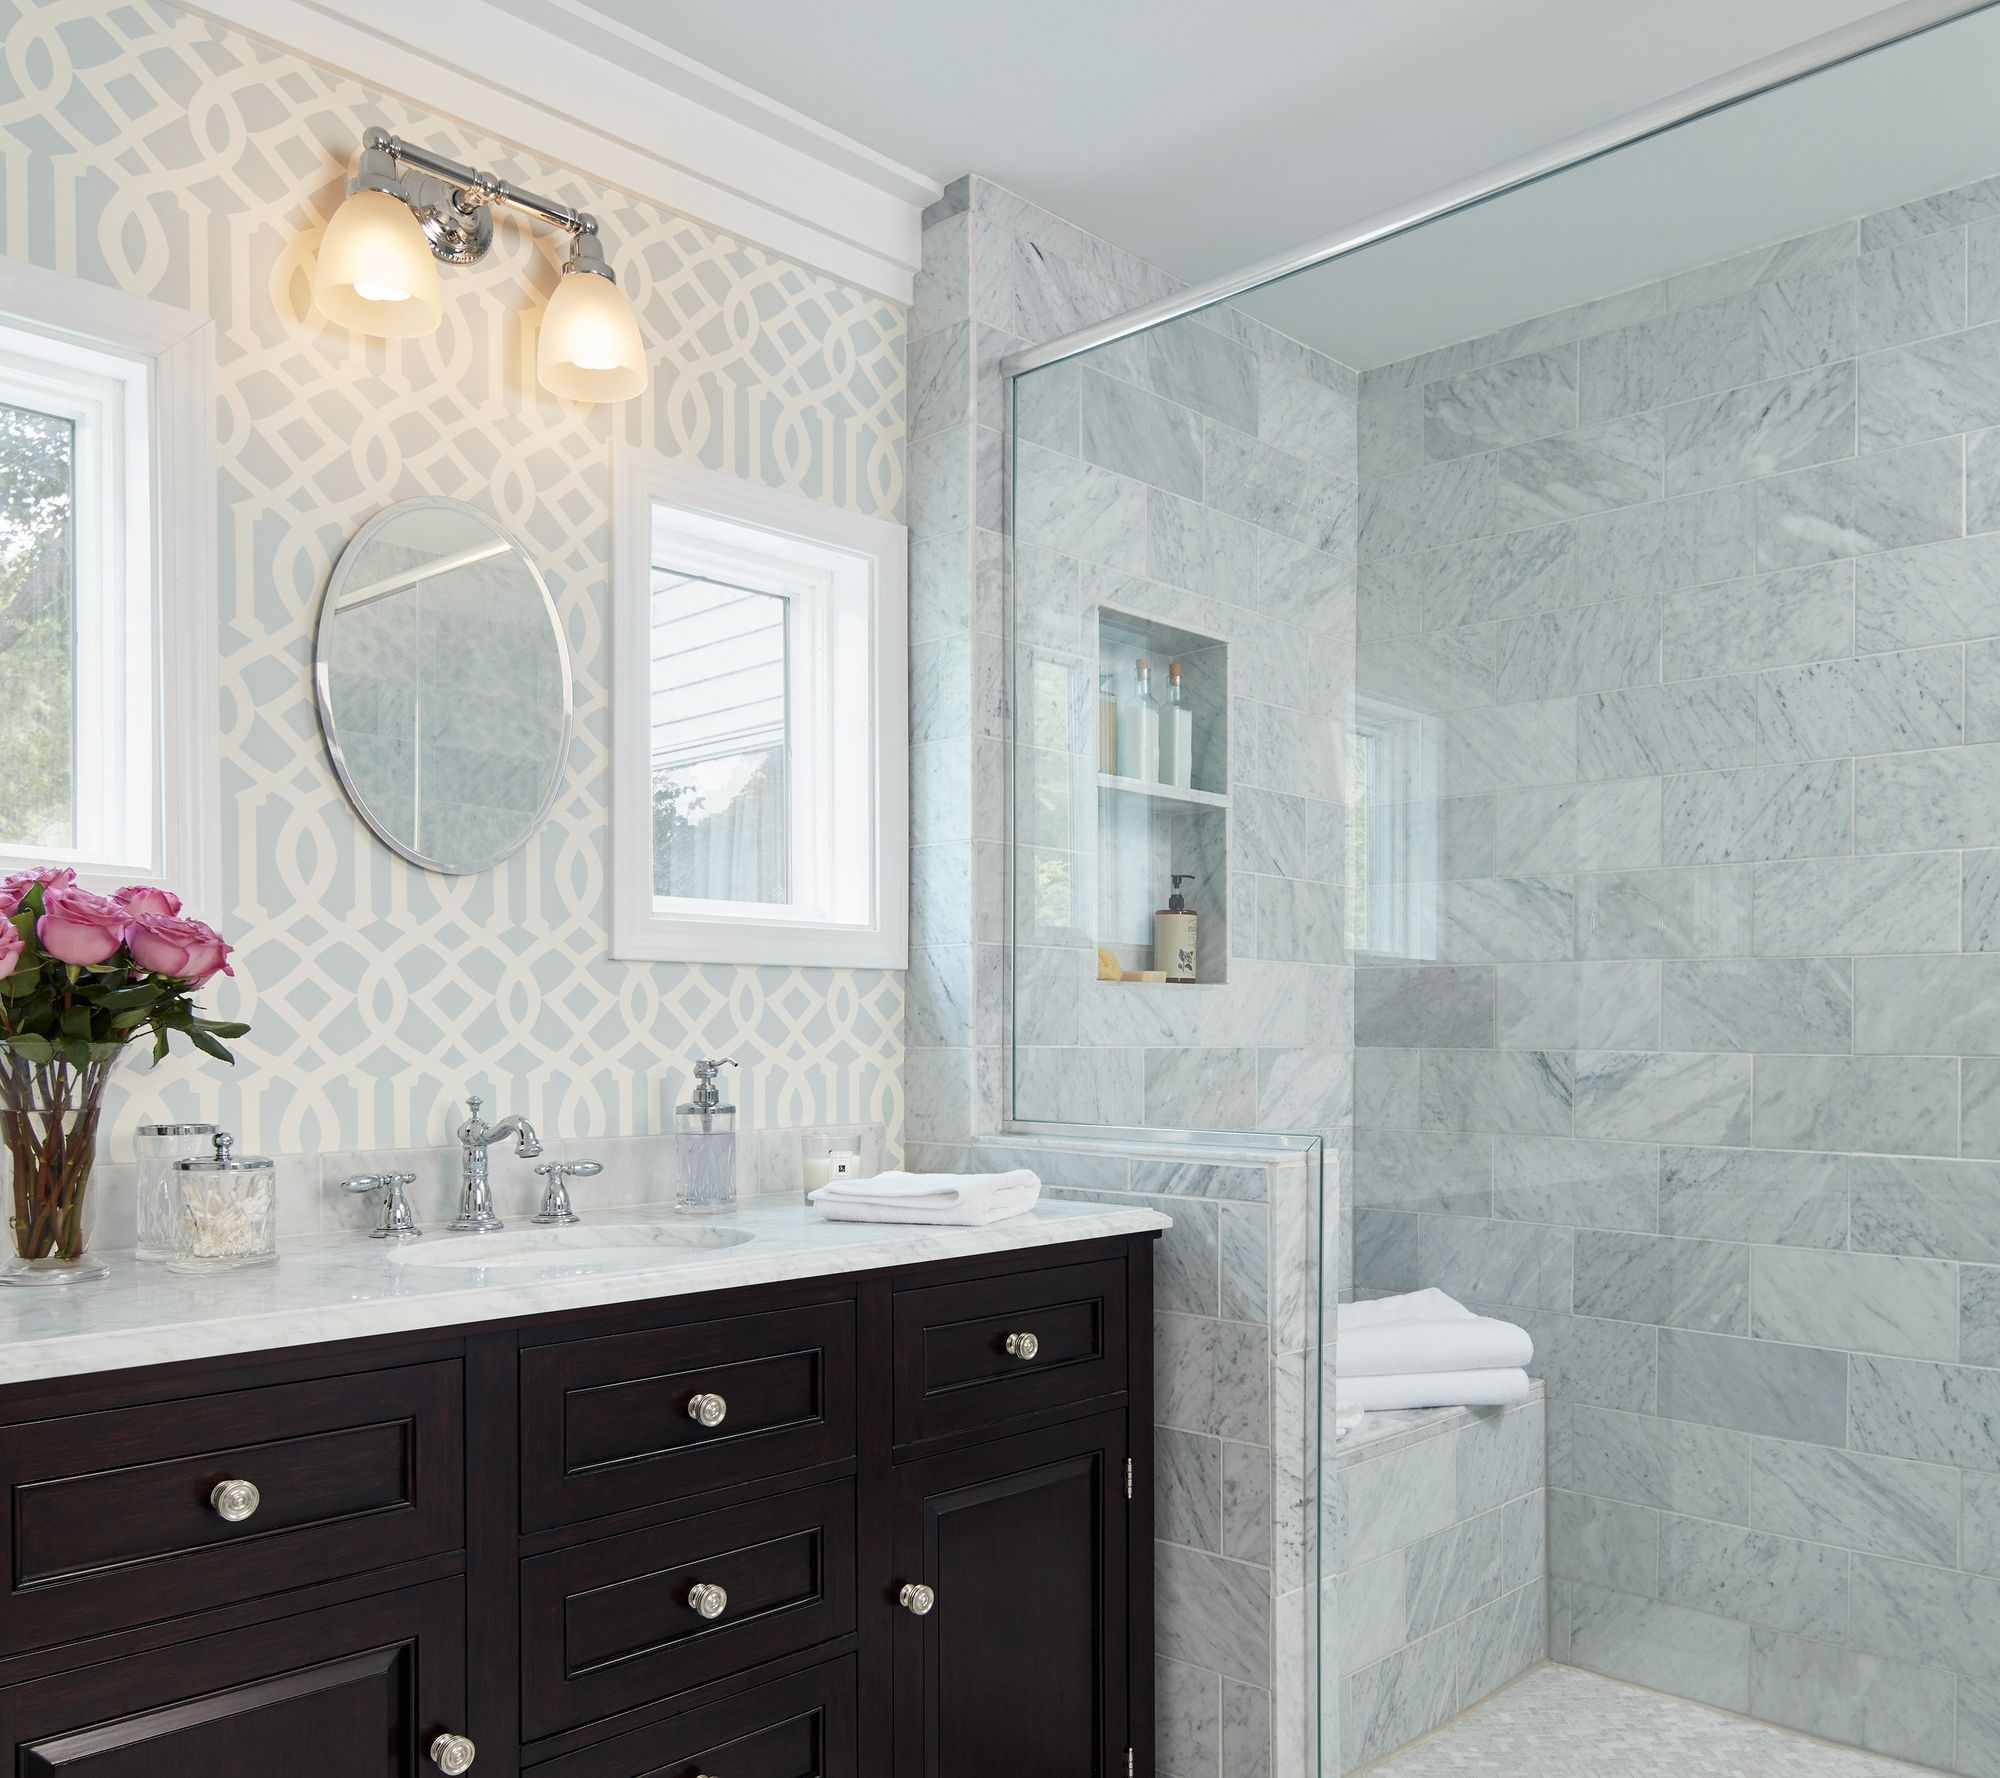 Before And After Bath Classic And Calming Bathroom Remodel